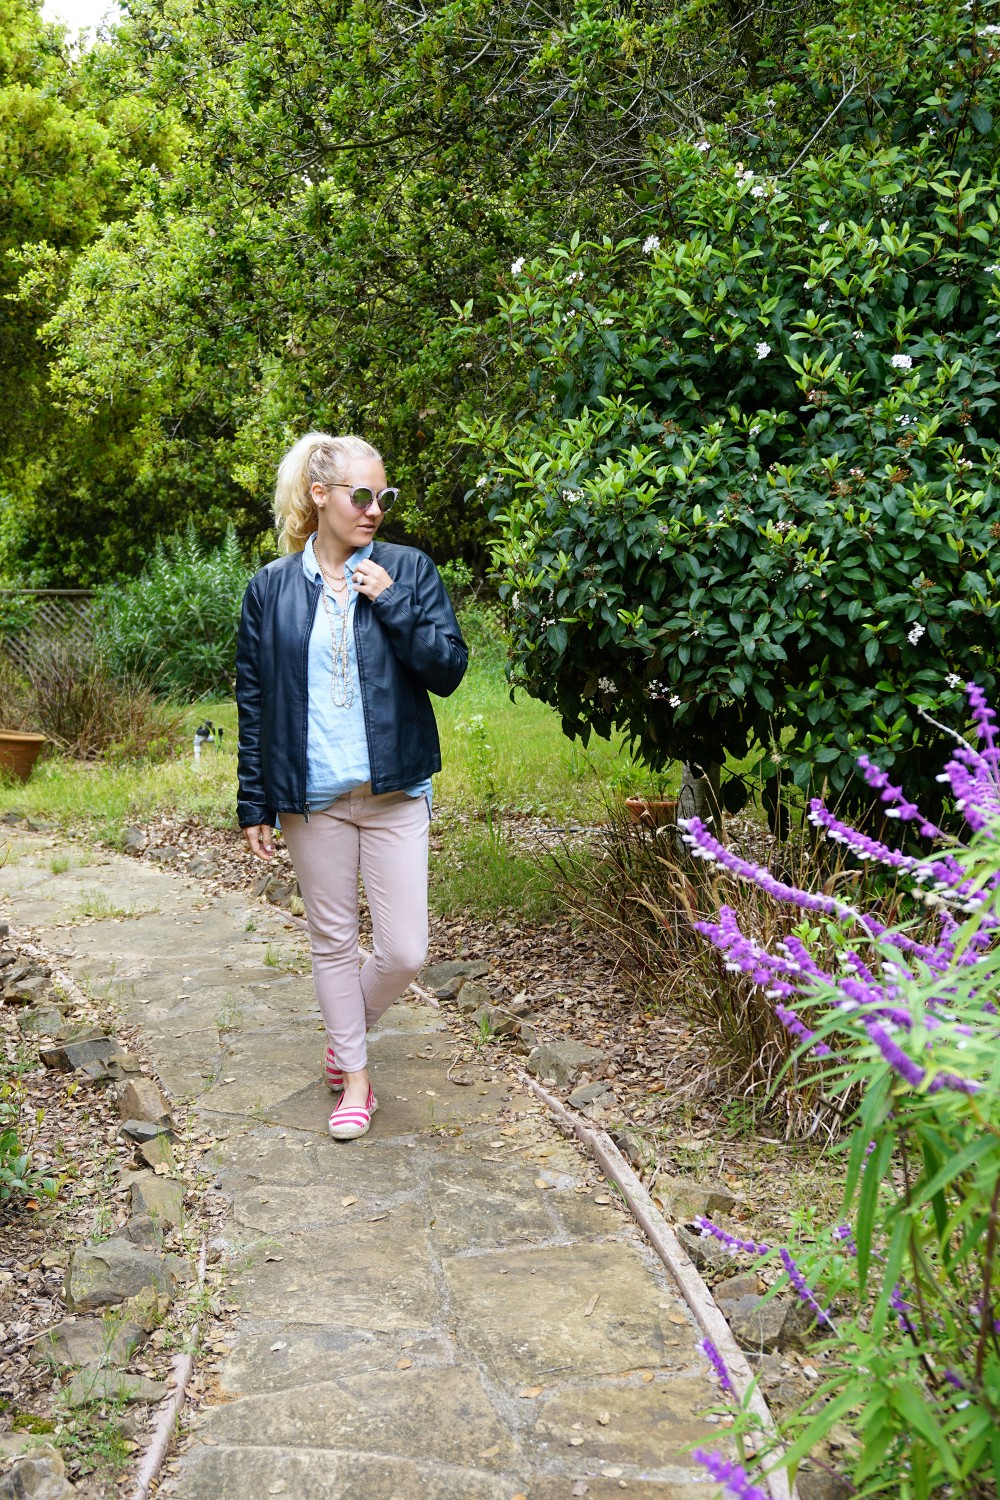 Two Ways to Wear Pale Pink Pants-Target Style-Mossimo Pants-Oufit Inspiration-Spring Style-Have Need Want 8